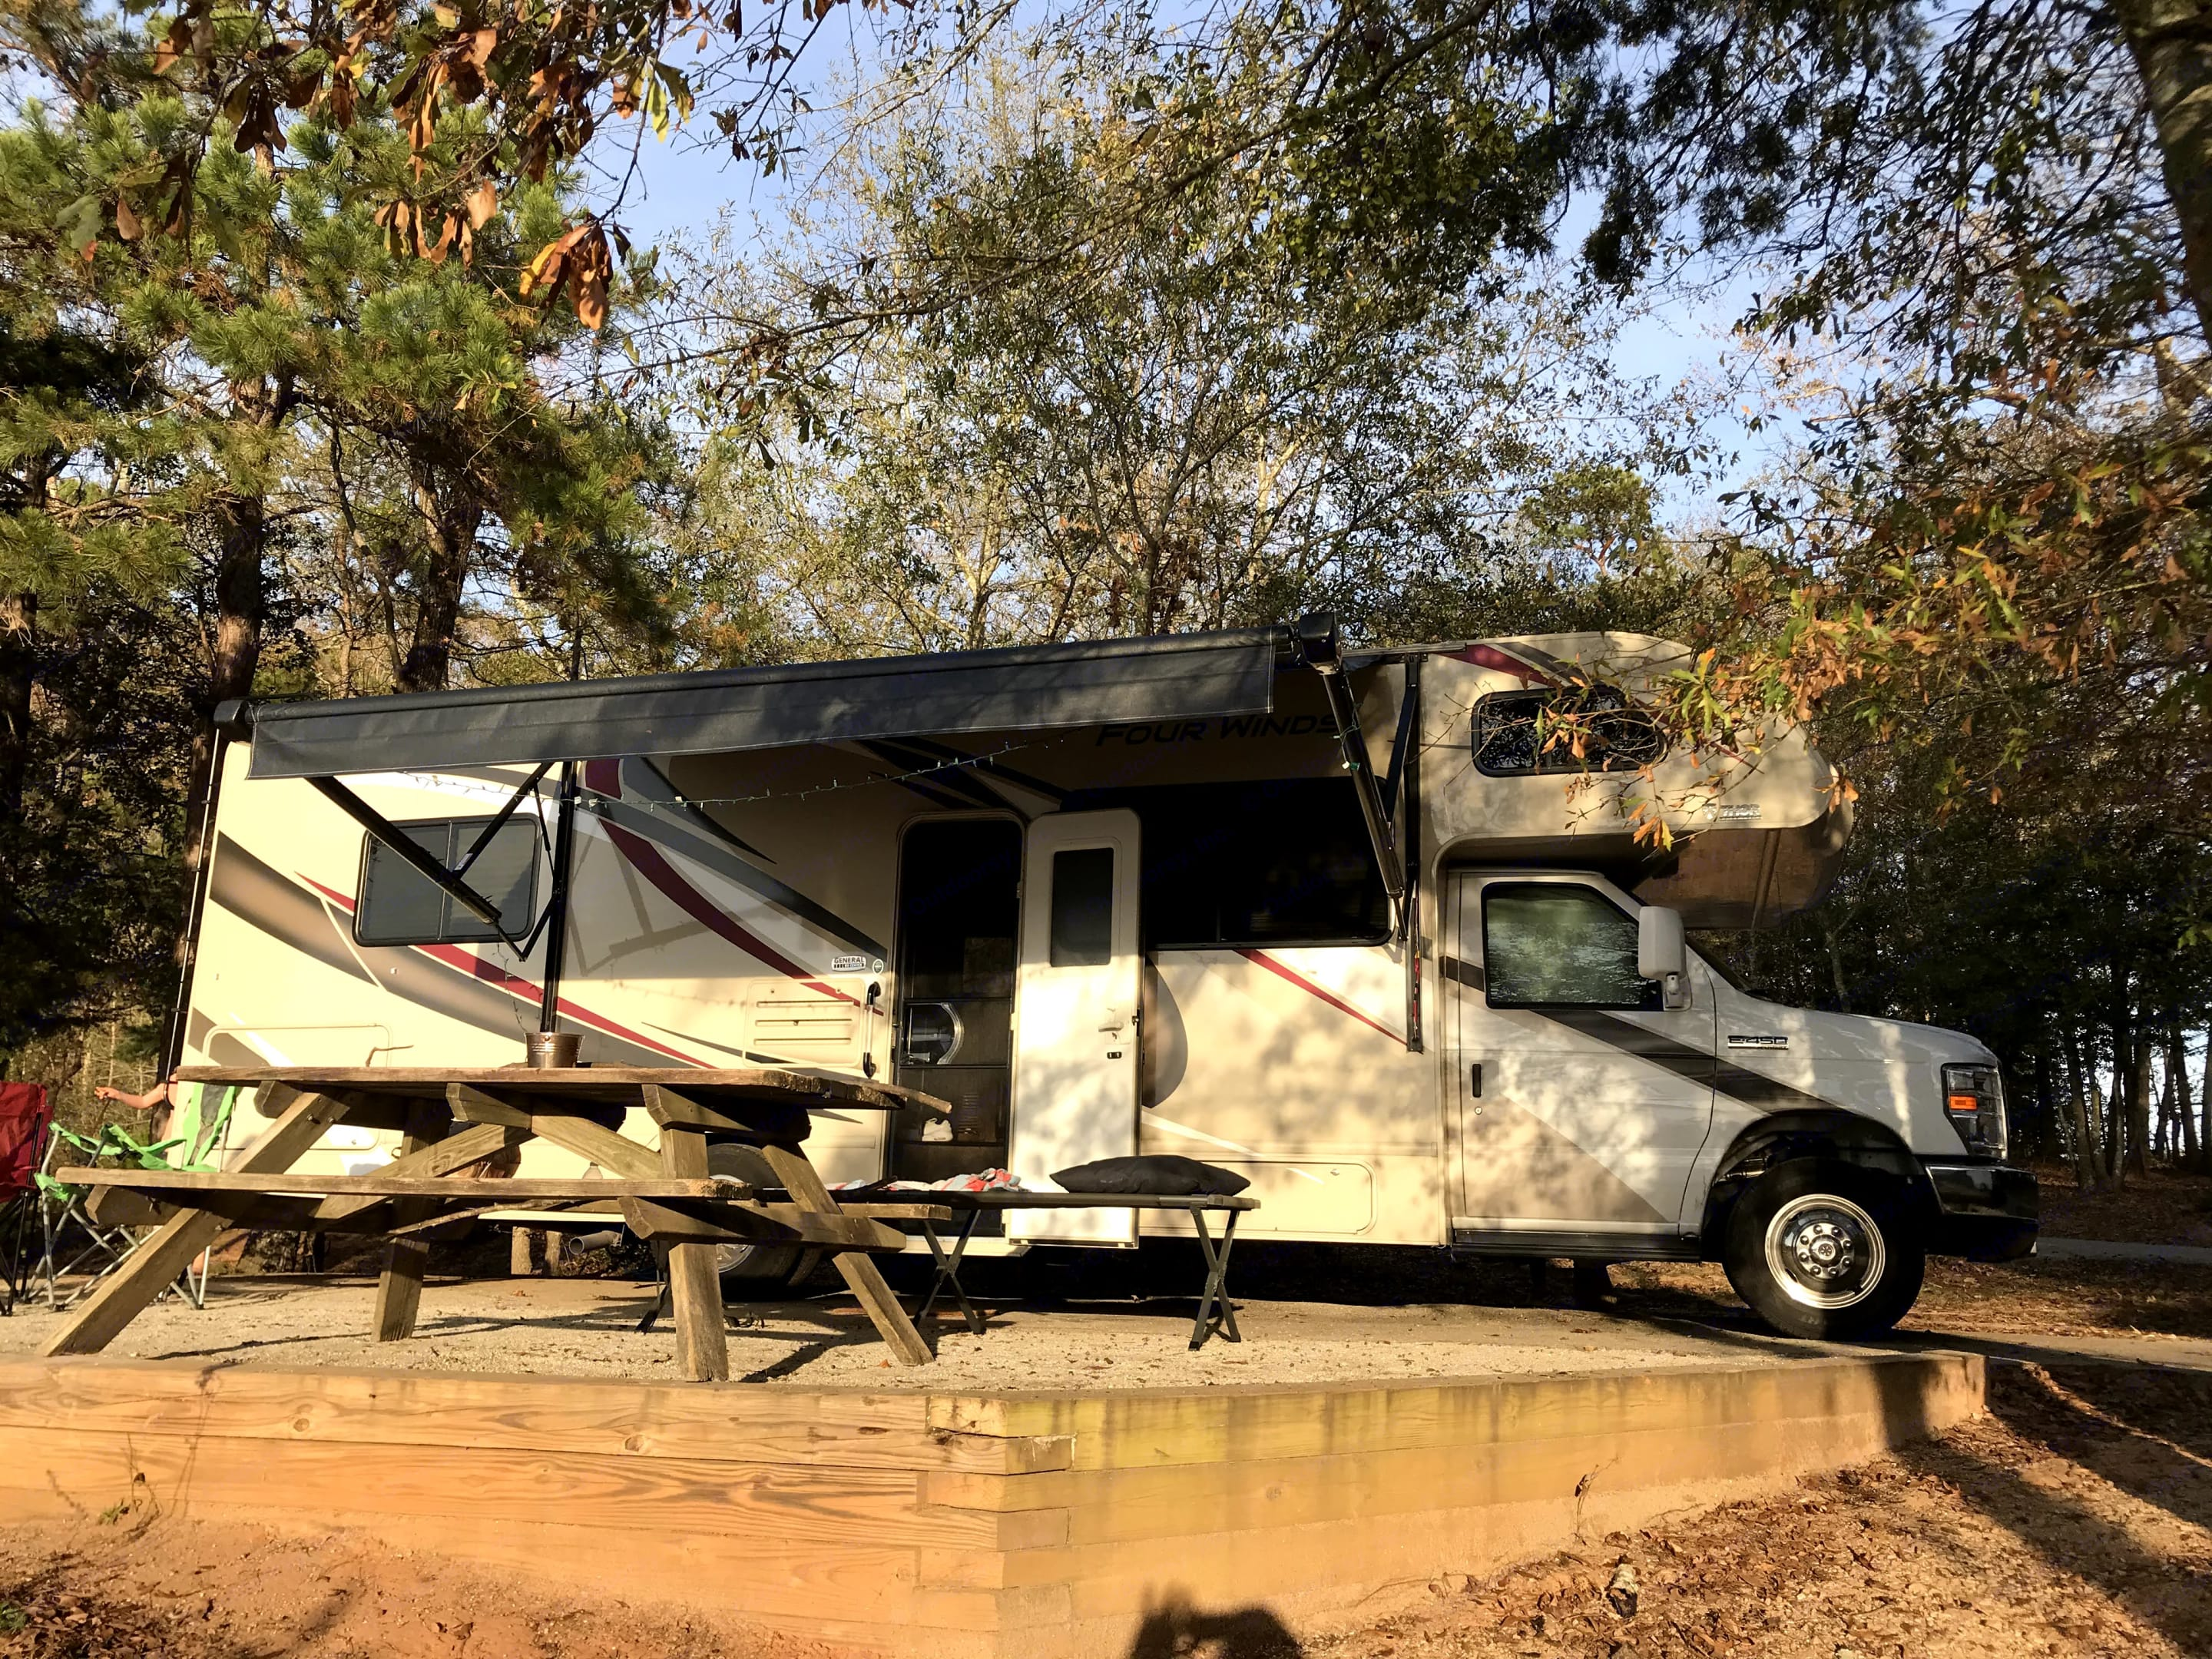 Power awning keeps sun and rain off.  Lots of outside storage in rear 'basement.'. Thor Motor Coach Four Winds 2020